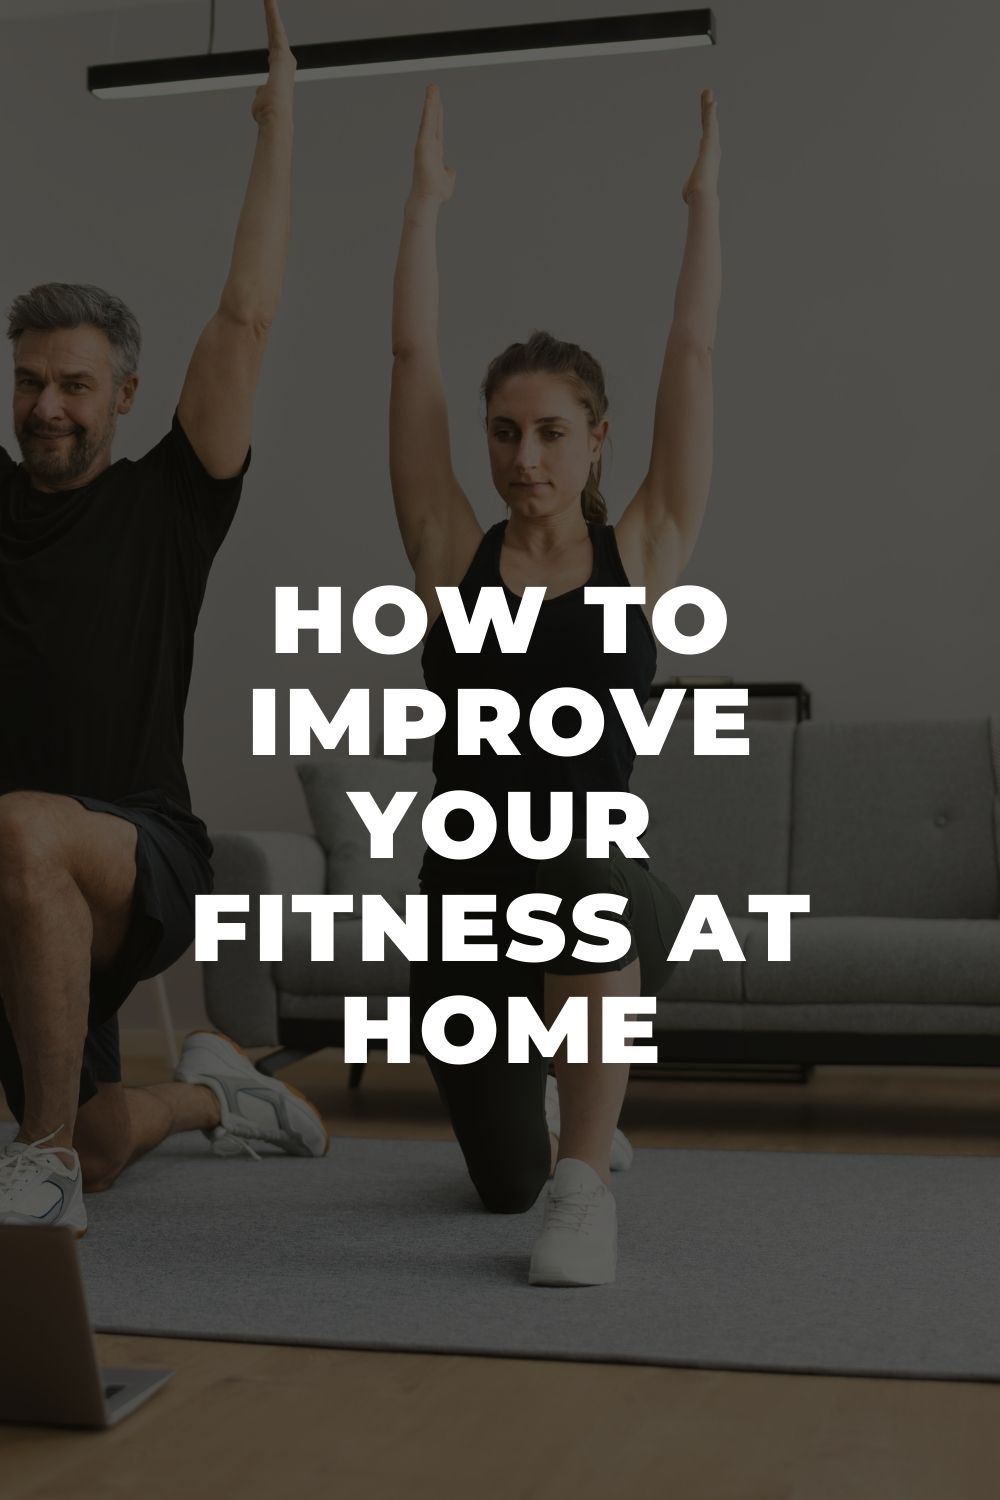 How to Improve Your Fitness at Home